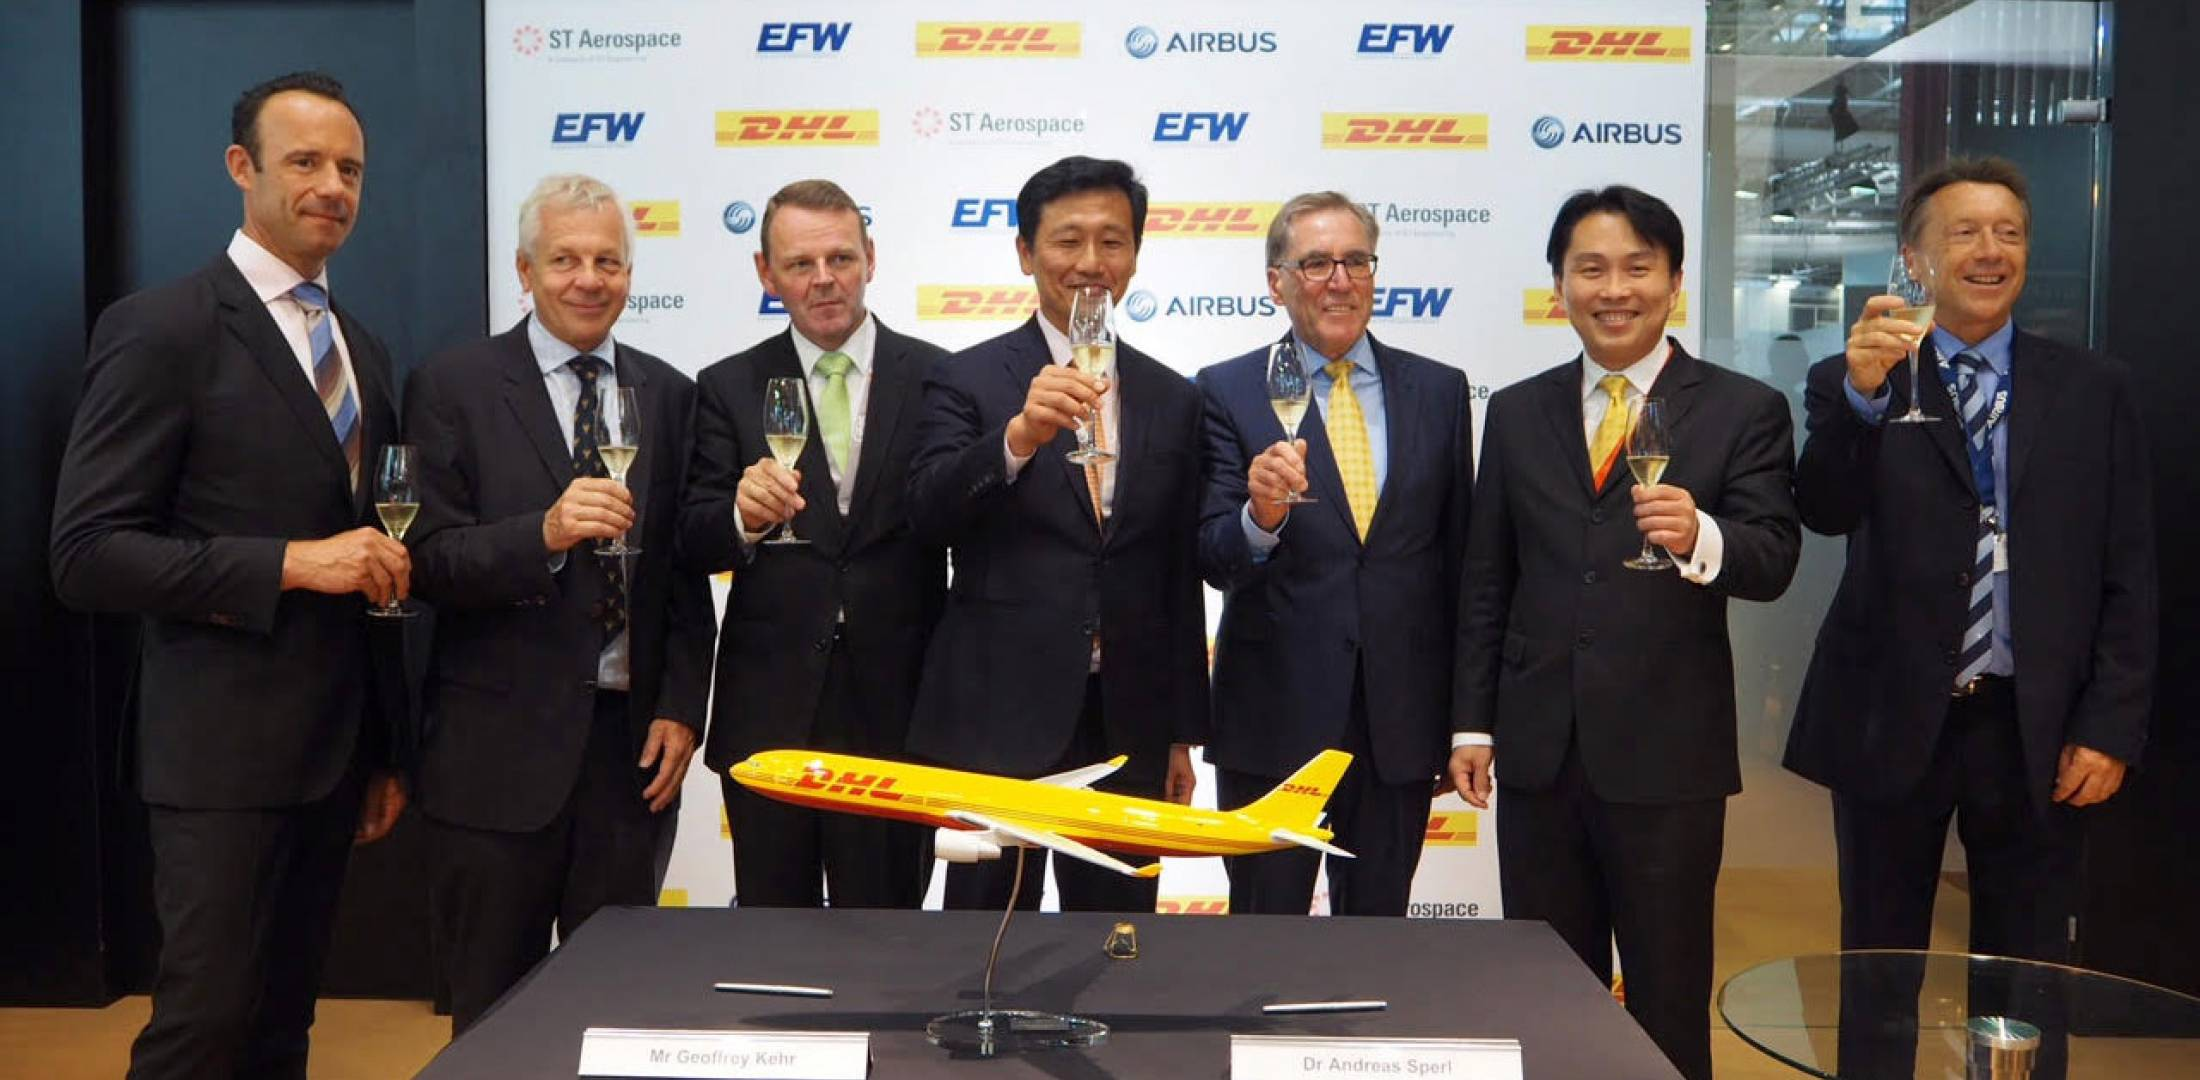 ee37d3816c Celebrating Monday s signing of an agreement to convert  passenger-configured Airbus A330-300s for all-cargo operations were (from  left) senior v-p of global ...